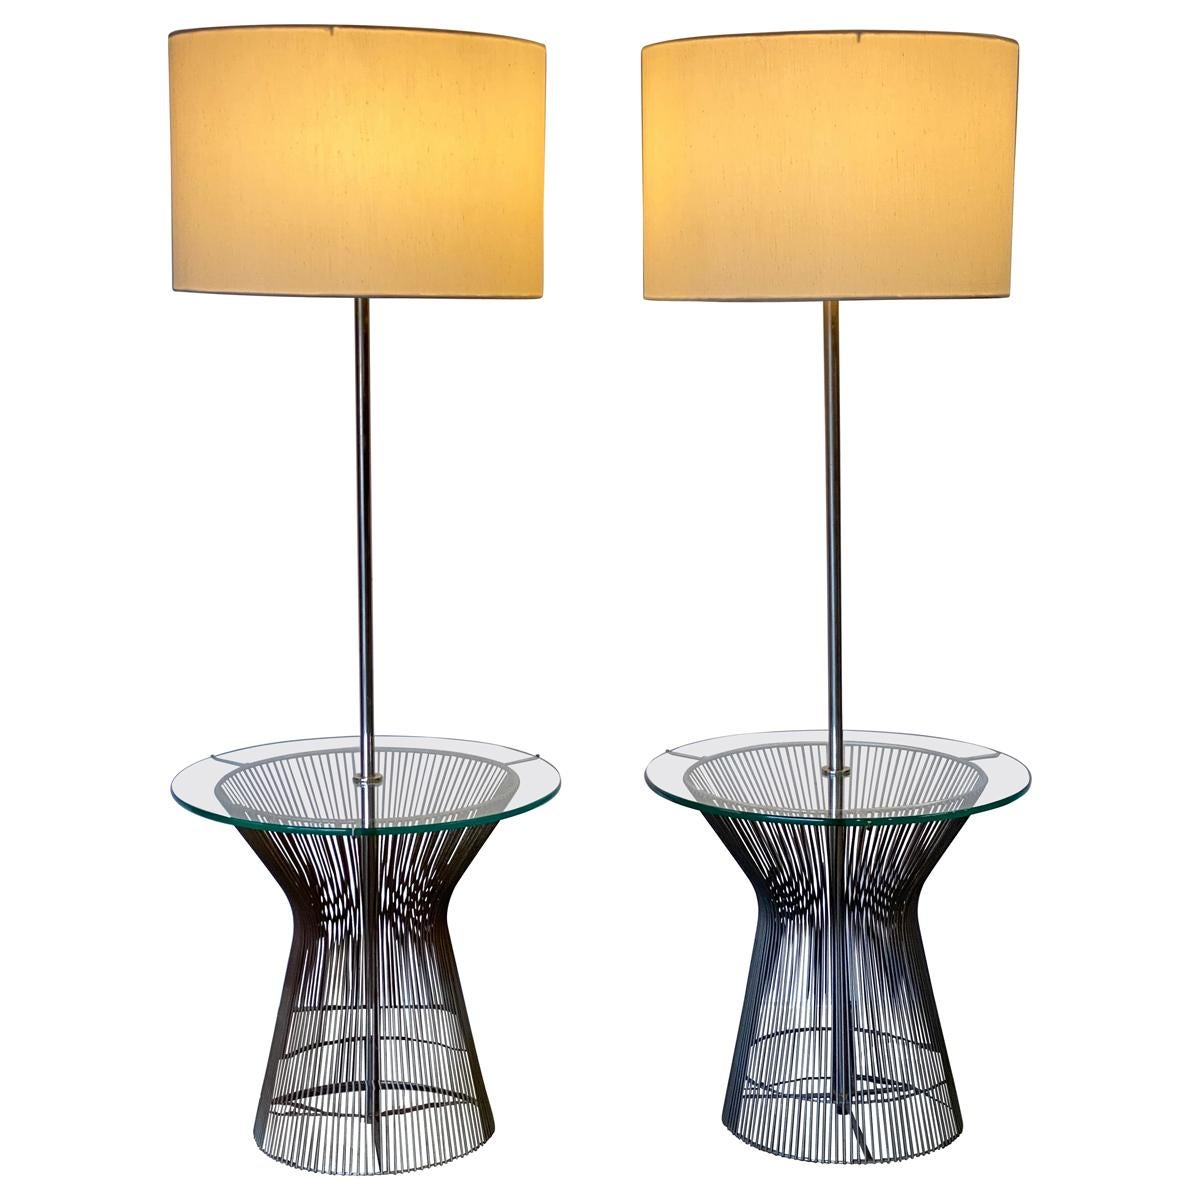 Elegant Wire Floor Lamps with Glass Tray Table by Laurel Lamp Company